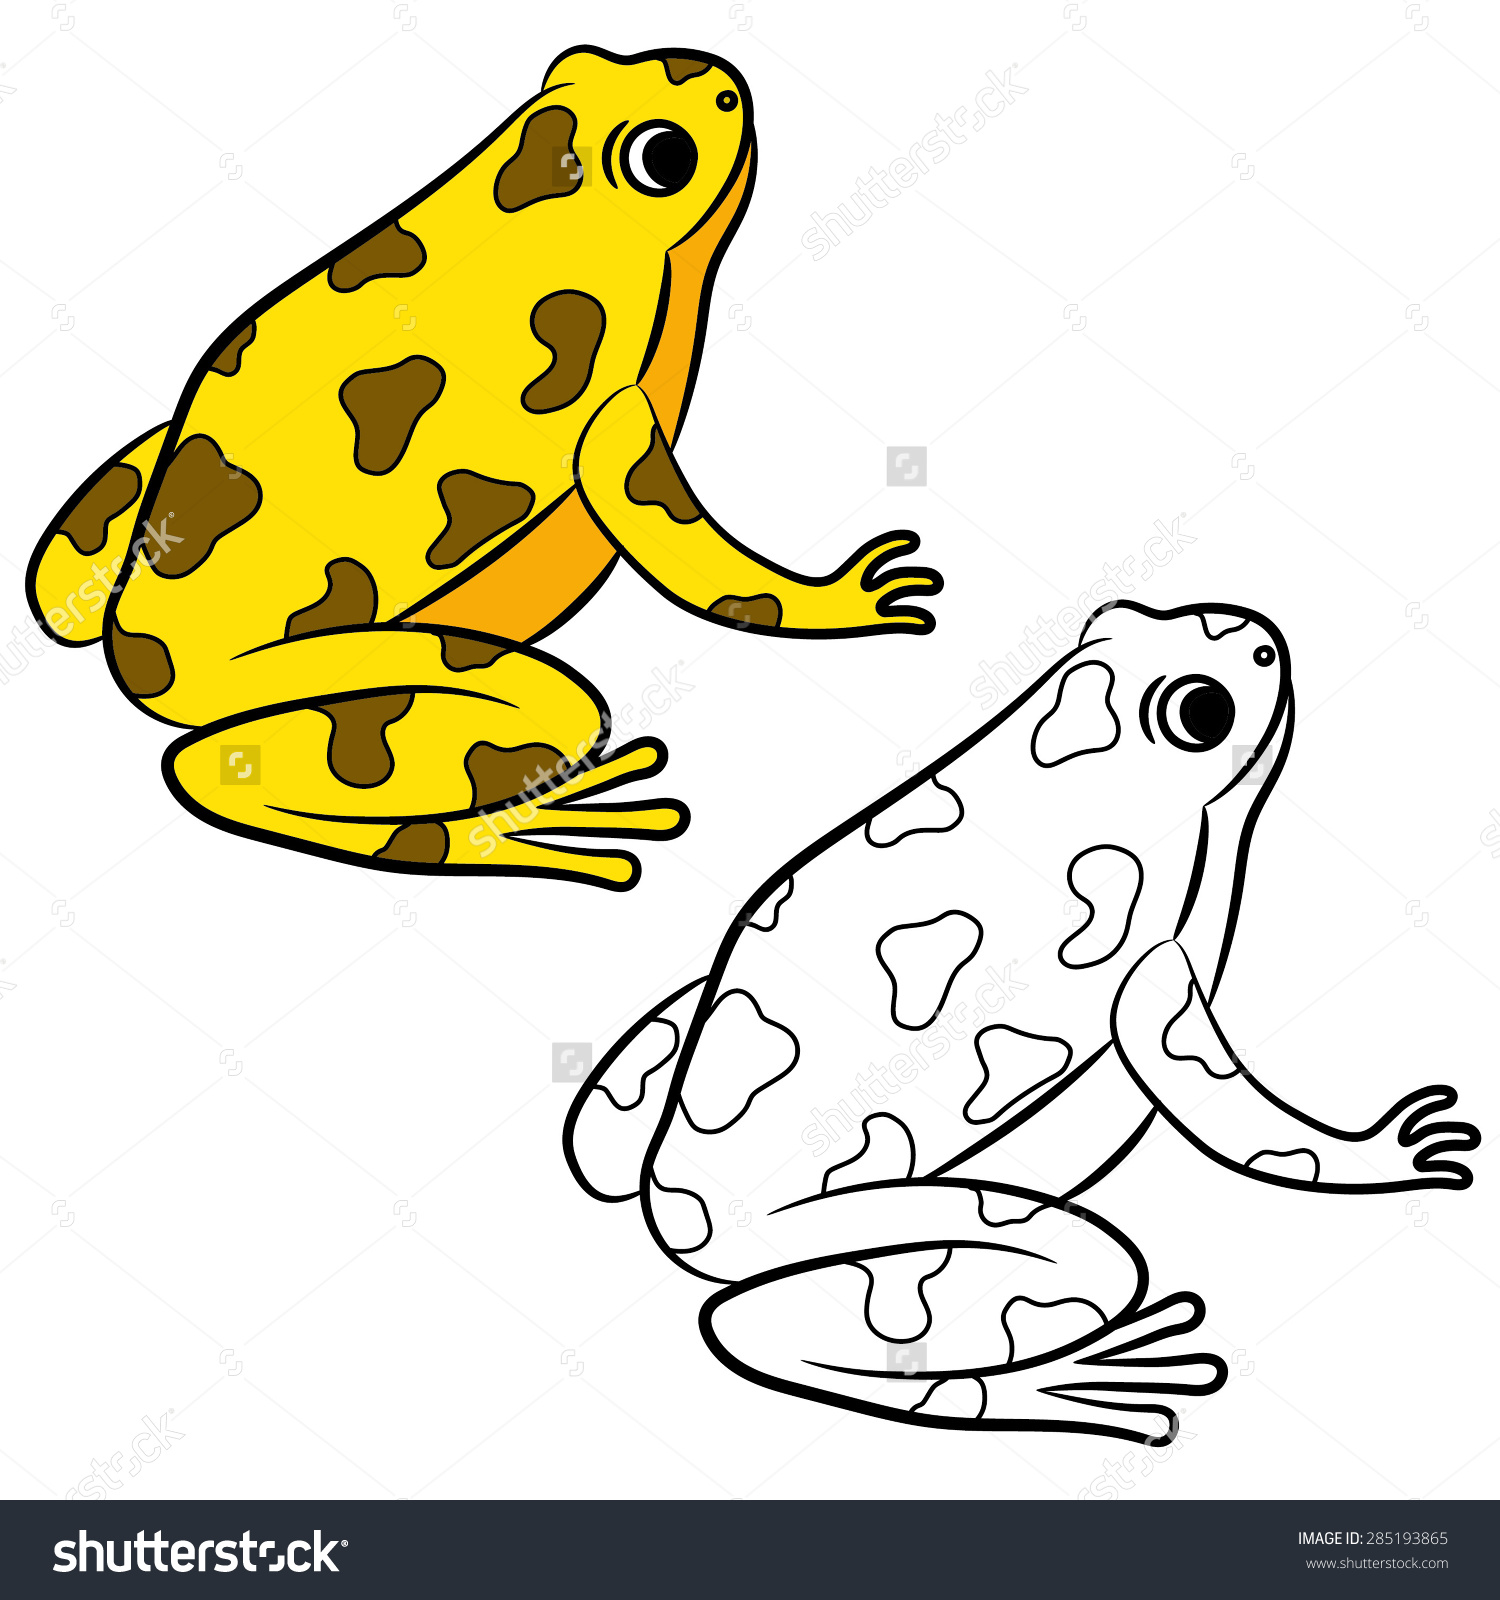 Golden Poison Frog clipart #7, Download drawings